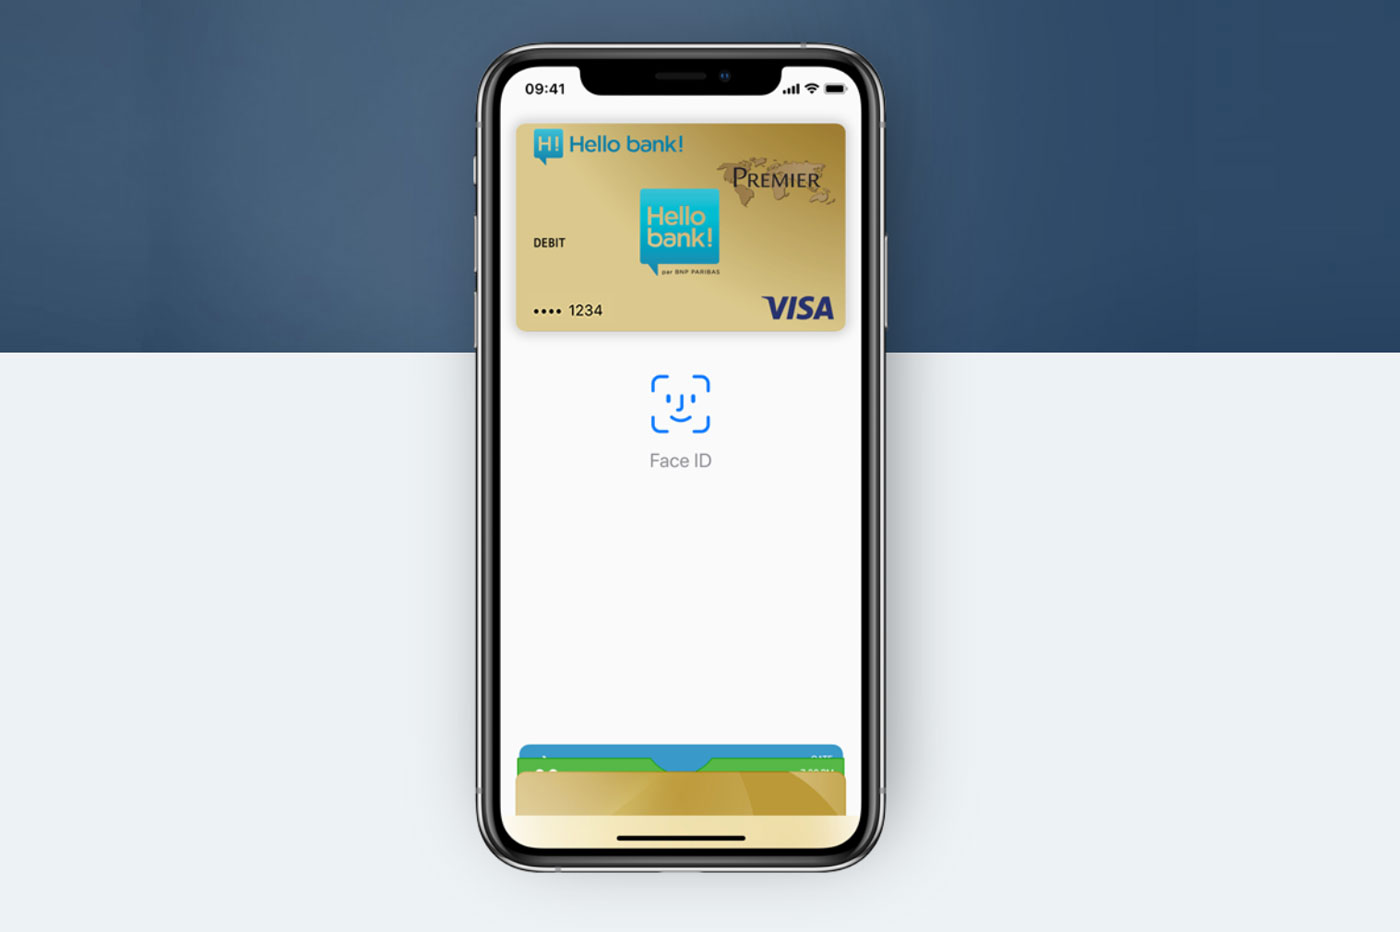 Paiement mobile Hello bank!